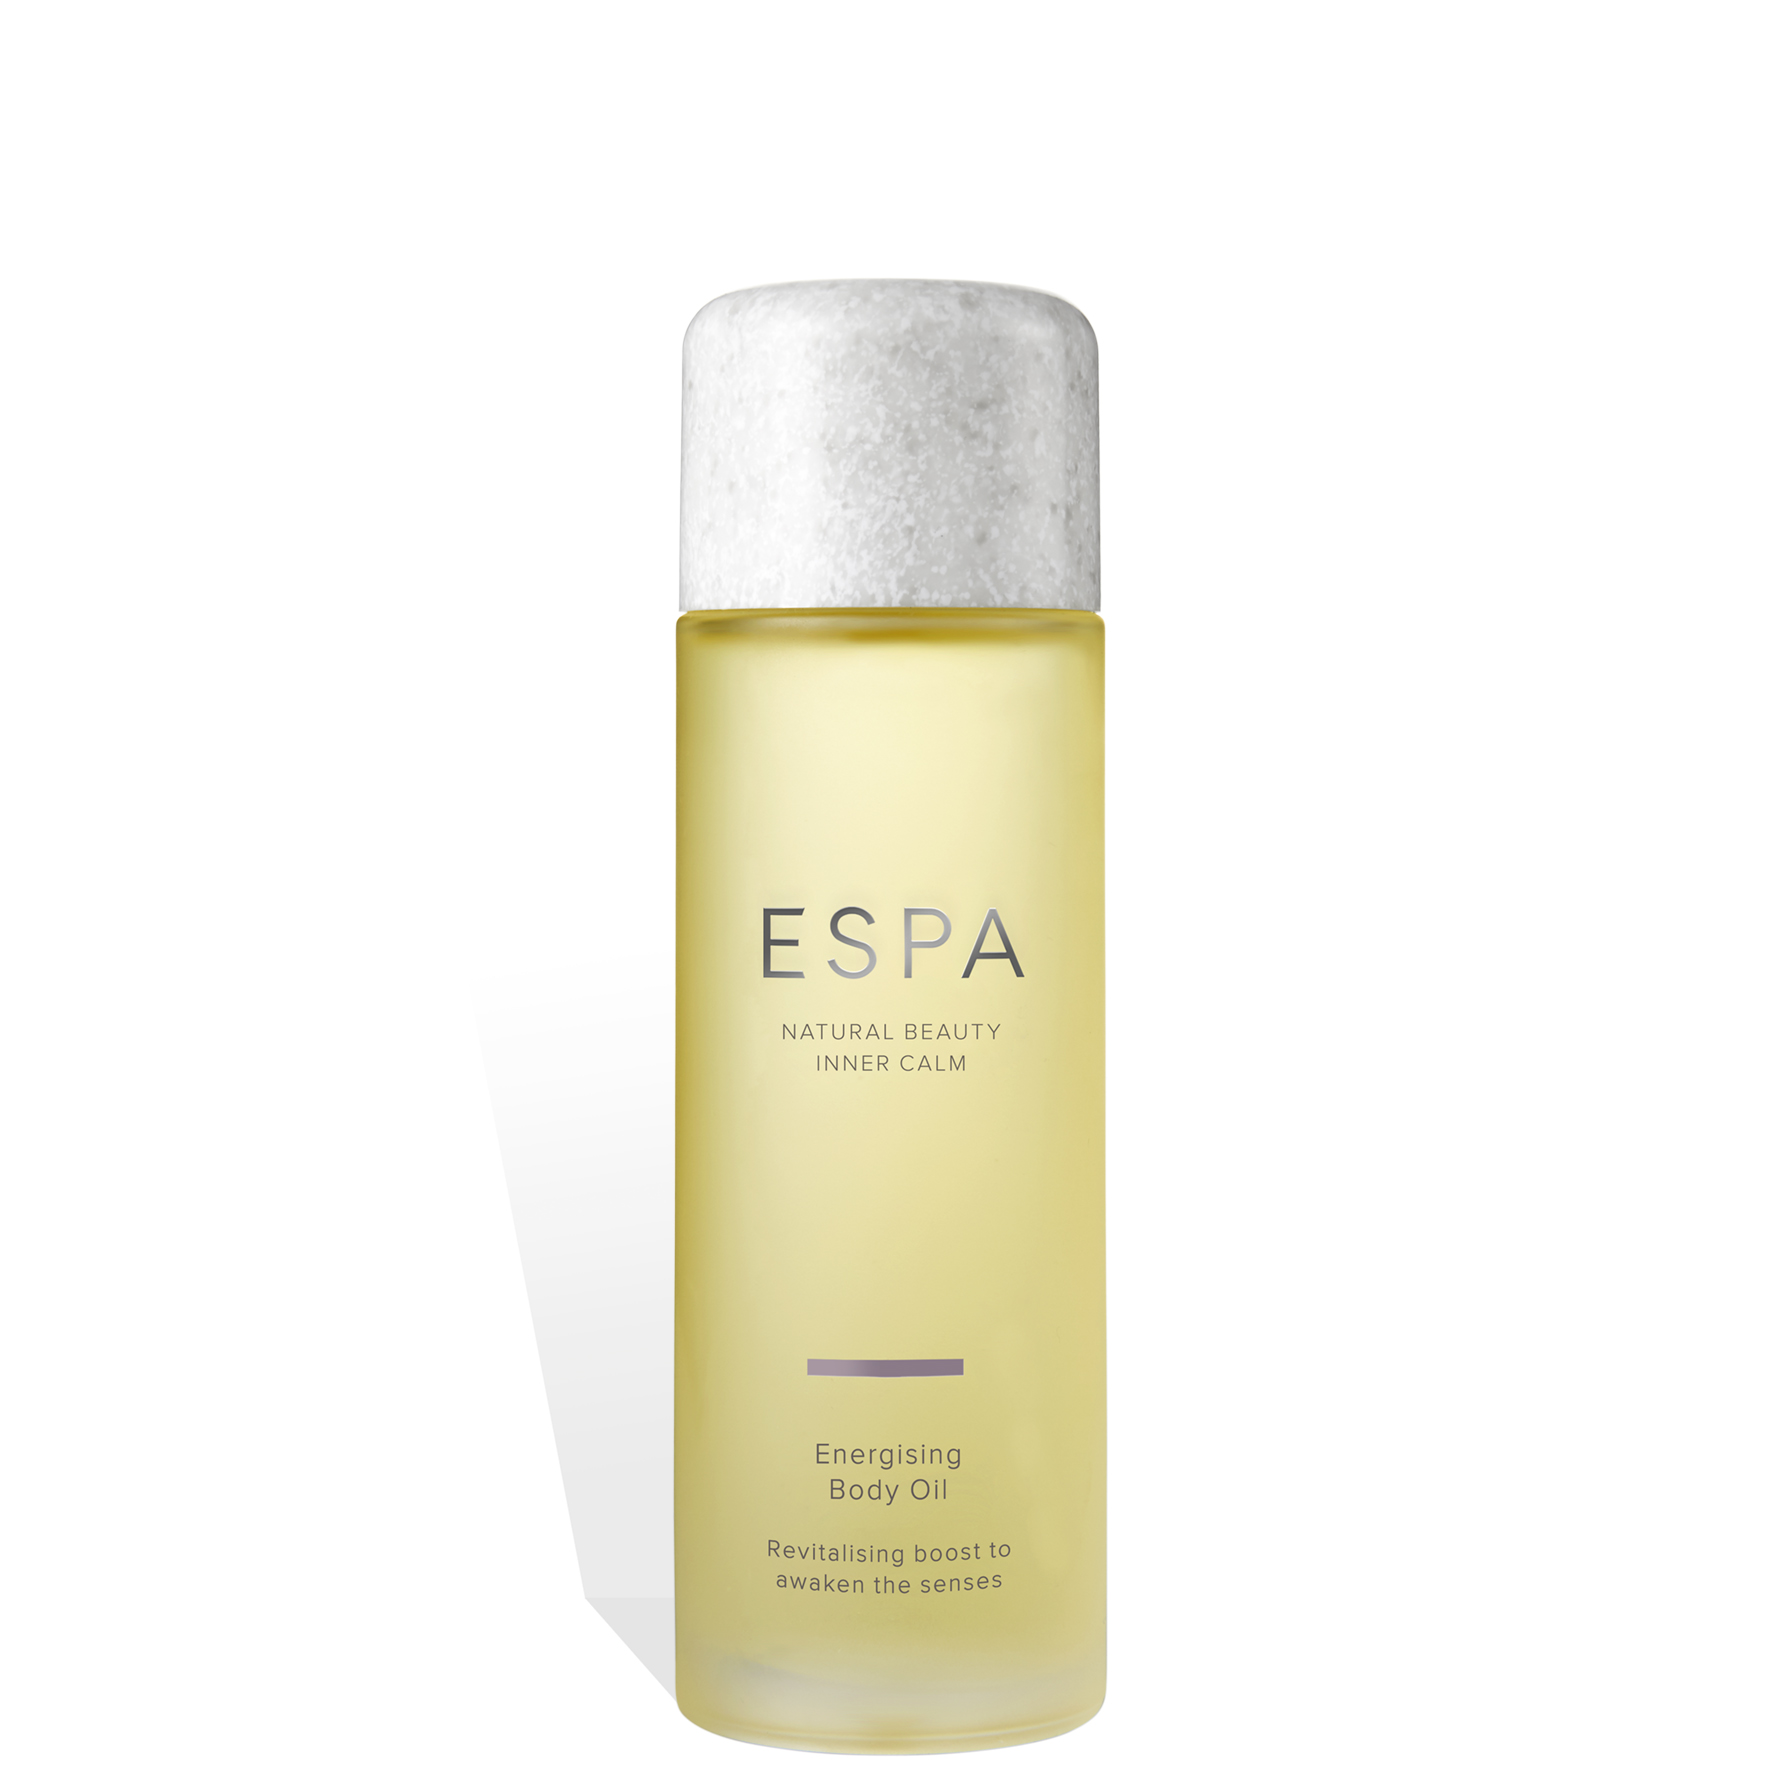 ESPA Energizing Body Oil